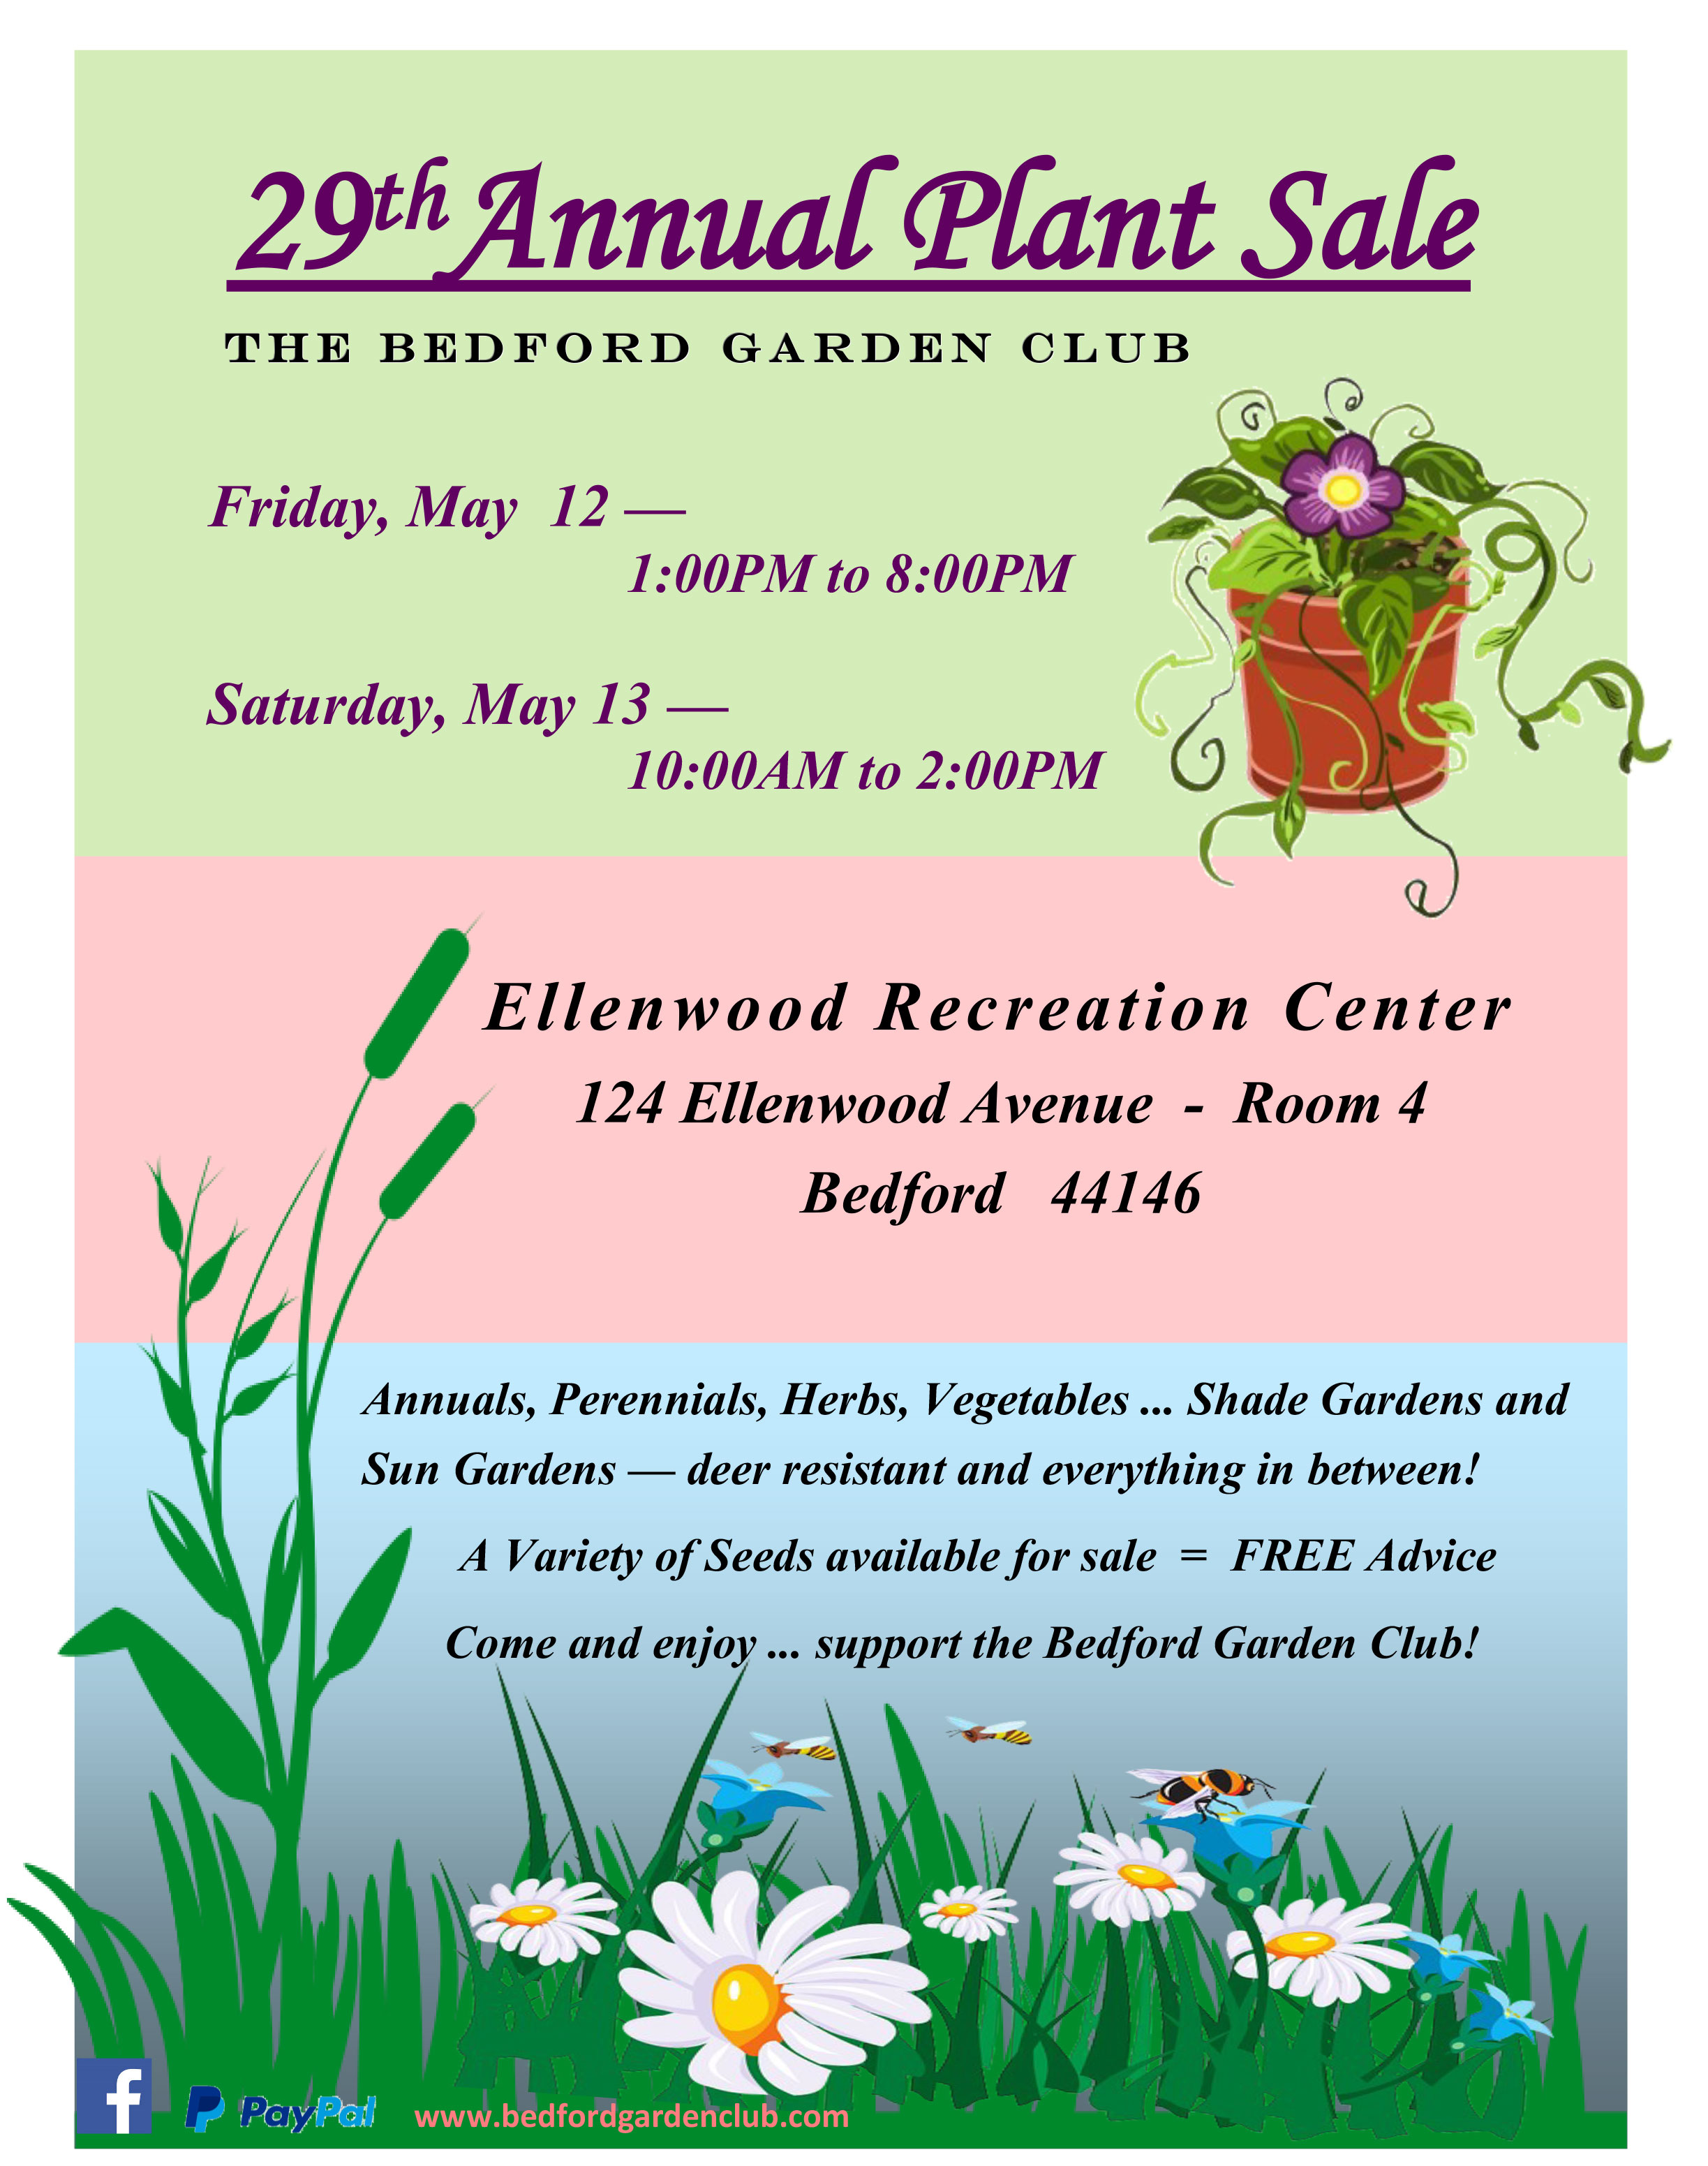 Mark Your Calendars For The Bedord Plant Sale. The Bedford Garden Club   Making Bedford more beautiful one garden